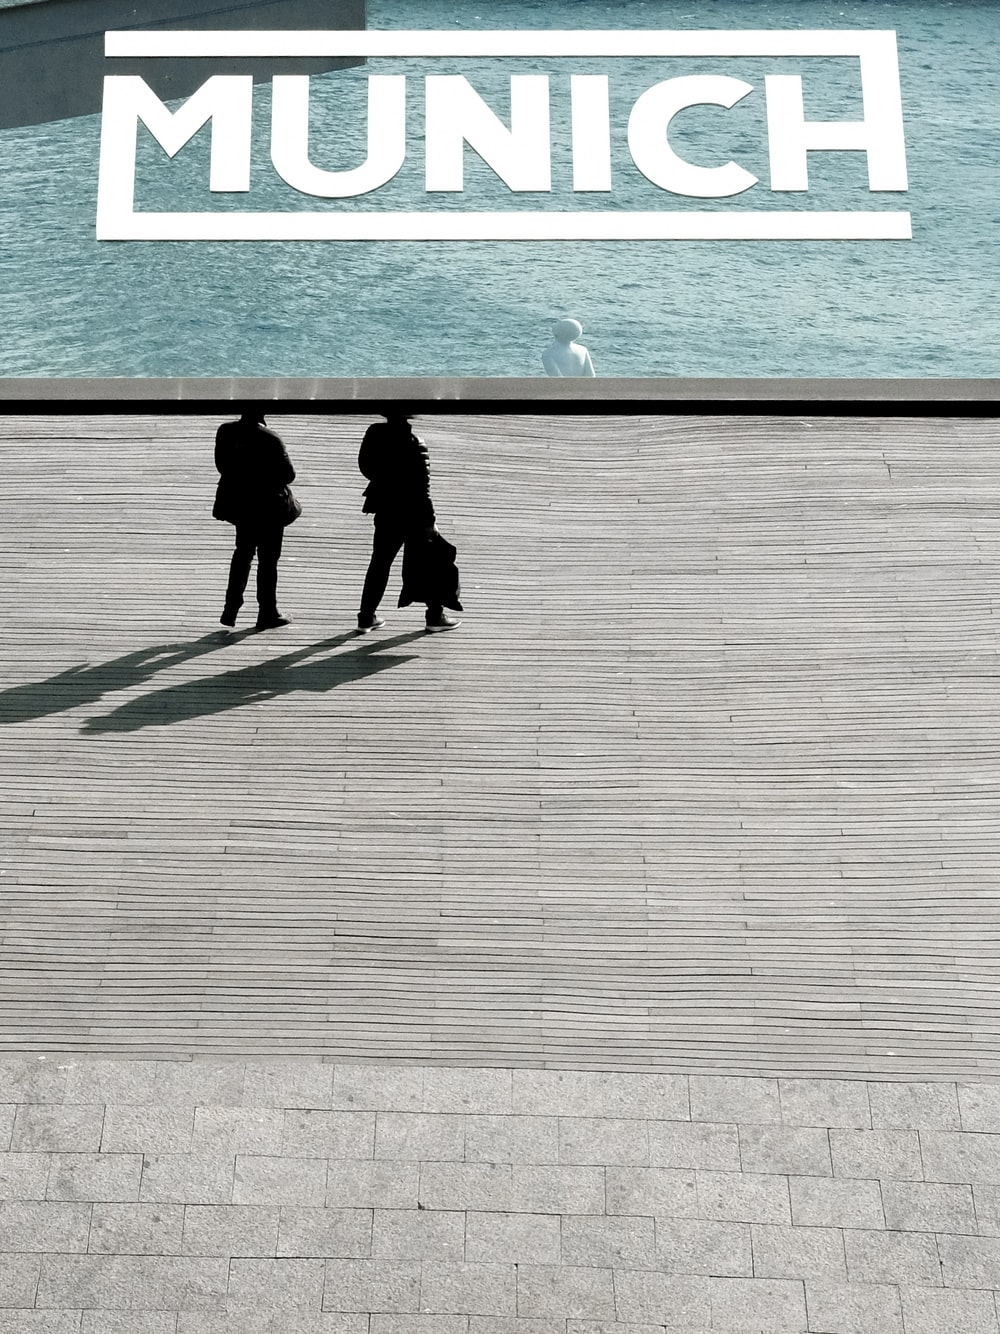 two person standing near body of water